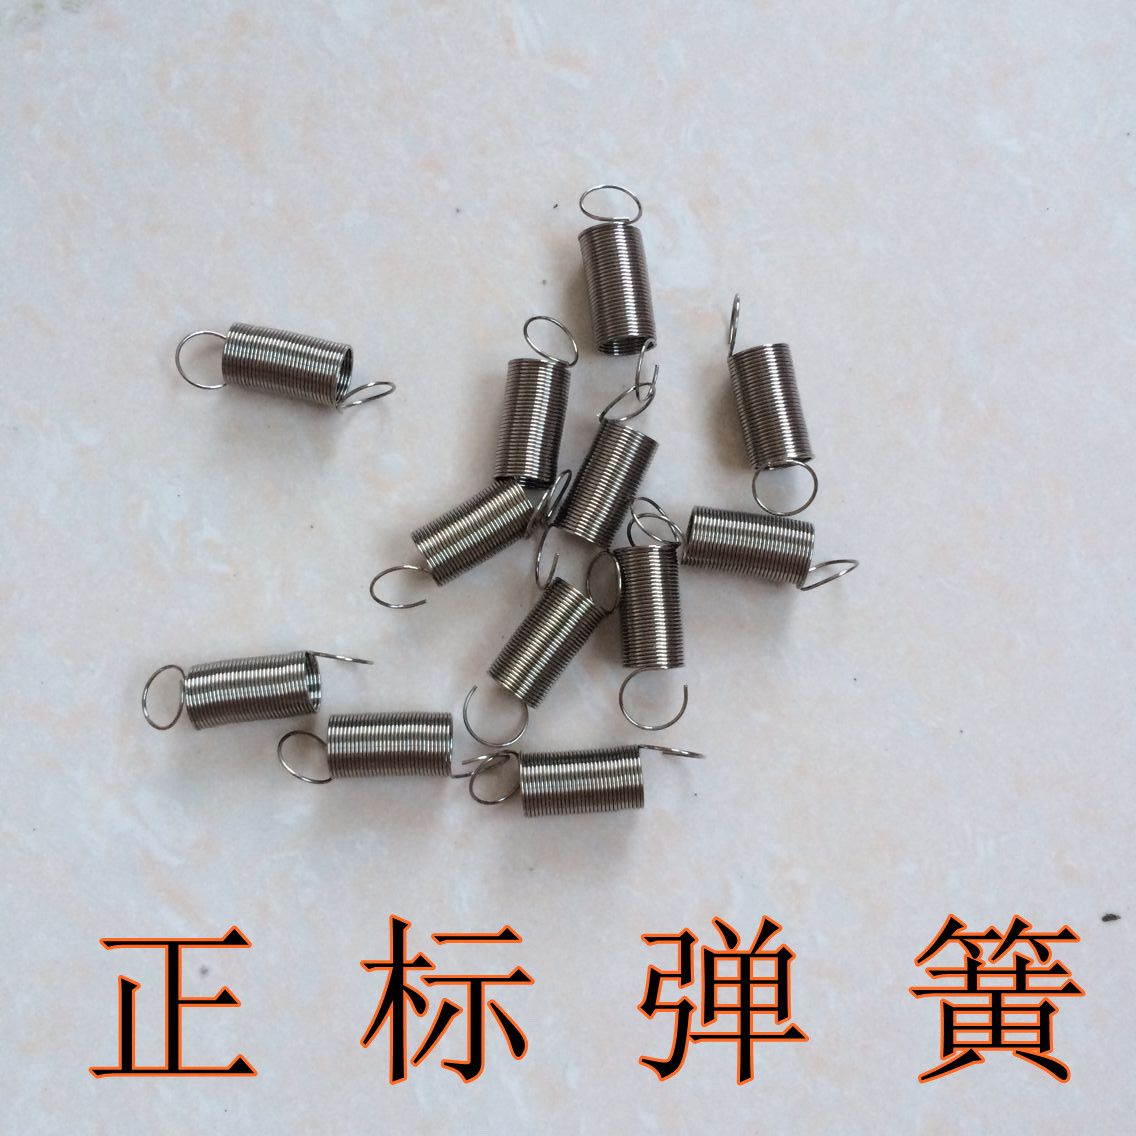 Free shipping compression spring stainless steel tension spring Spring wire diameter 0.5 diameter 8 length 30 MM(China (Mainland))